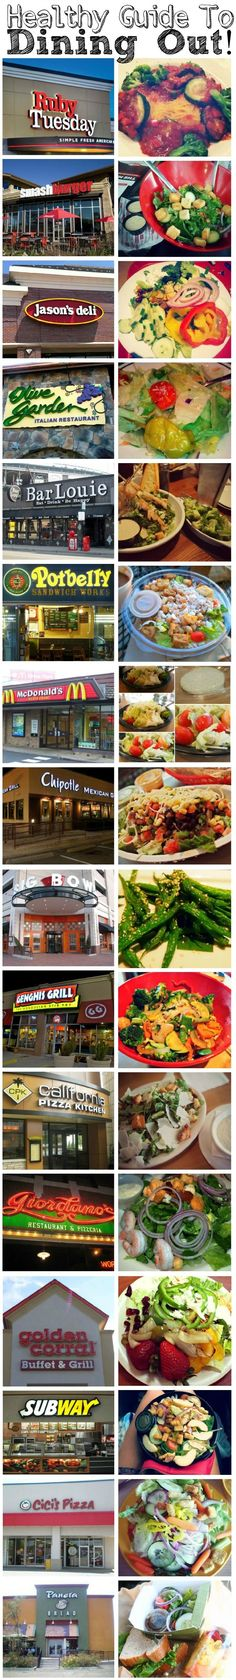 Healthy Guide to Dining out at your favorite restaurants! Tons of healthy options and tips to staying on track!